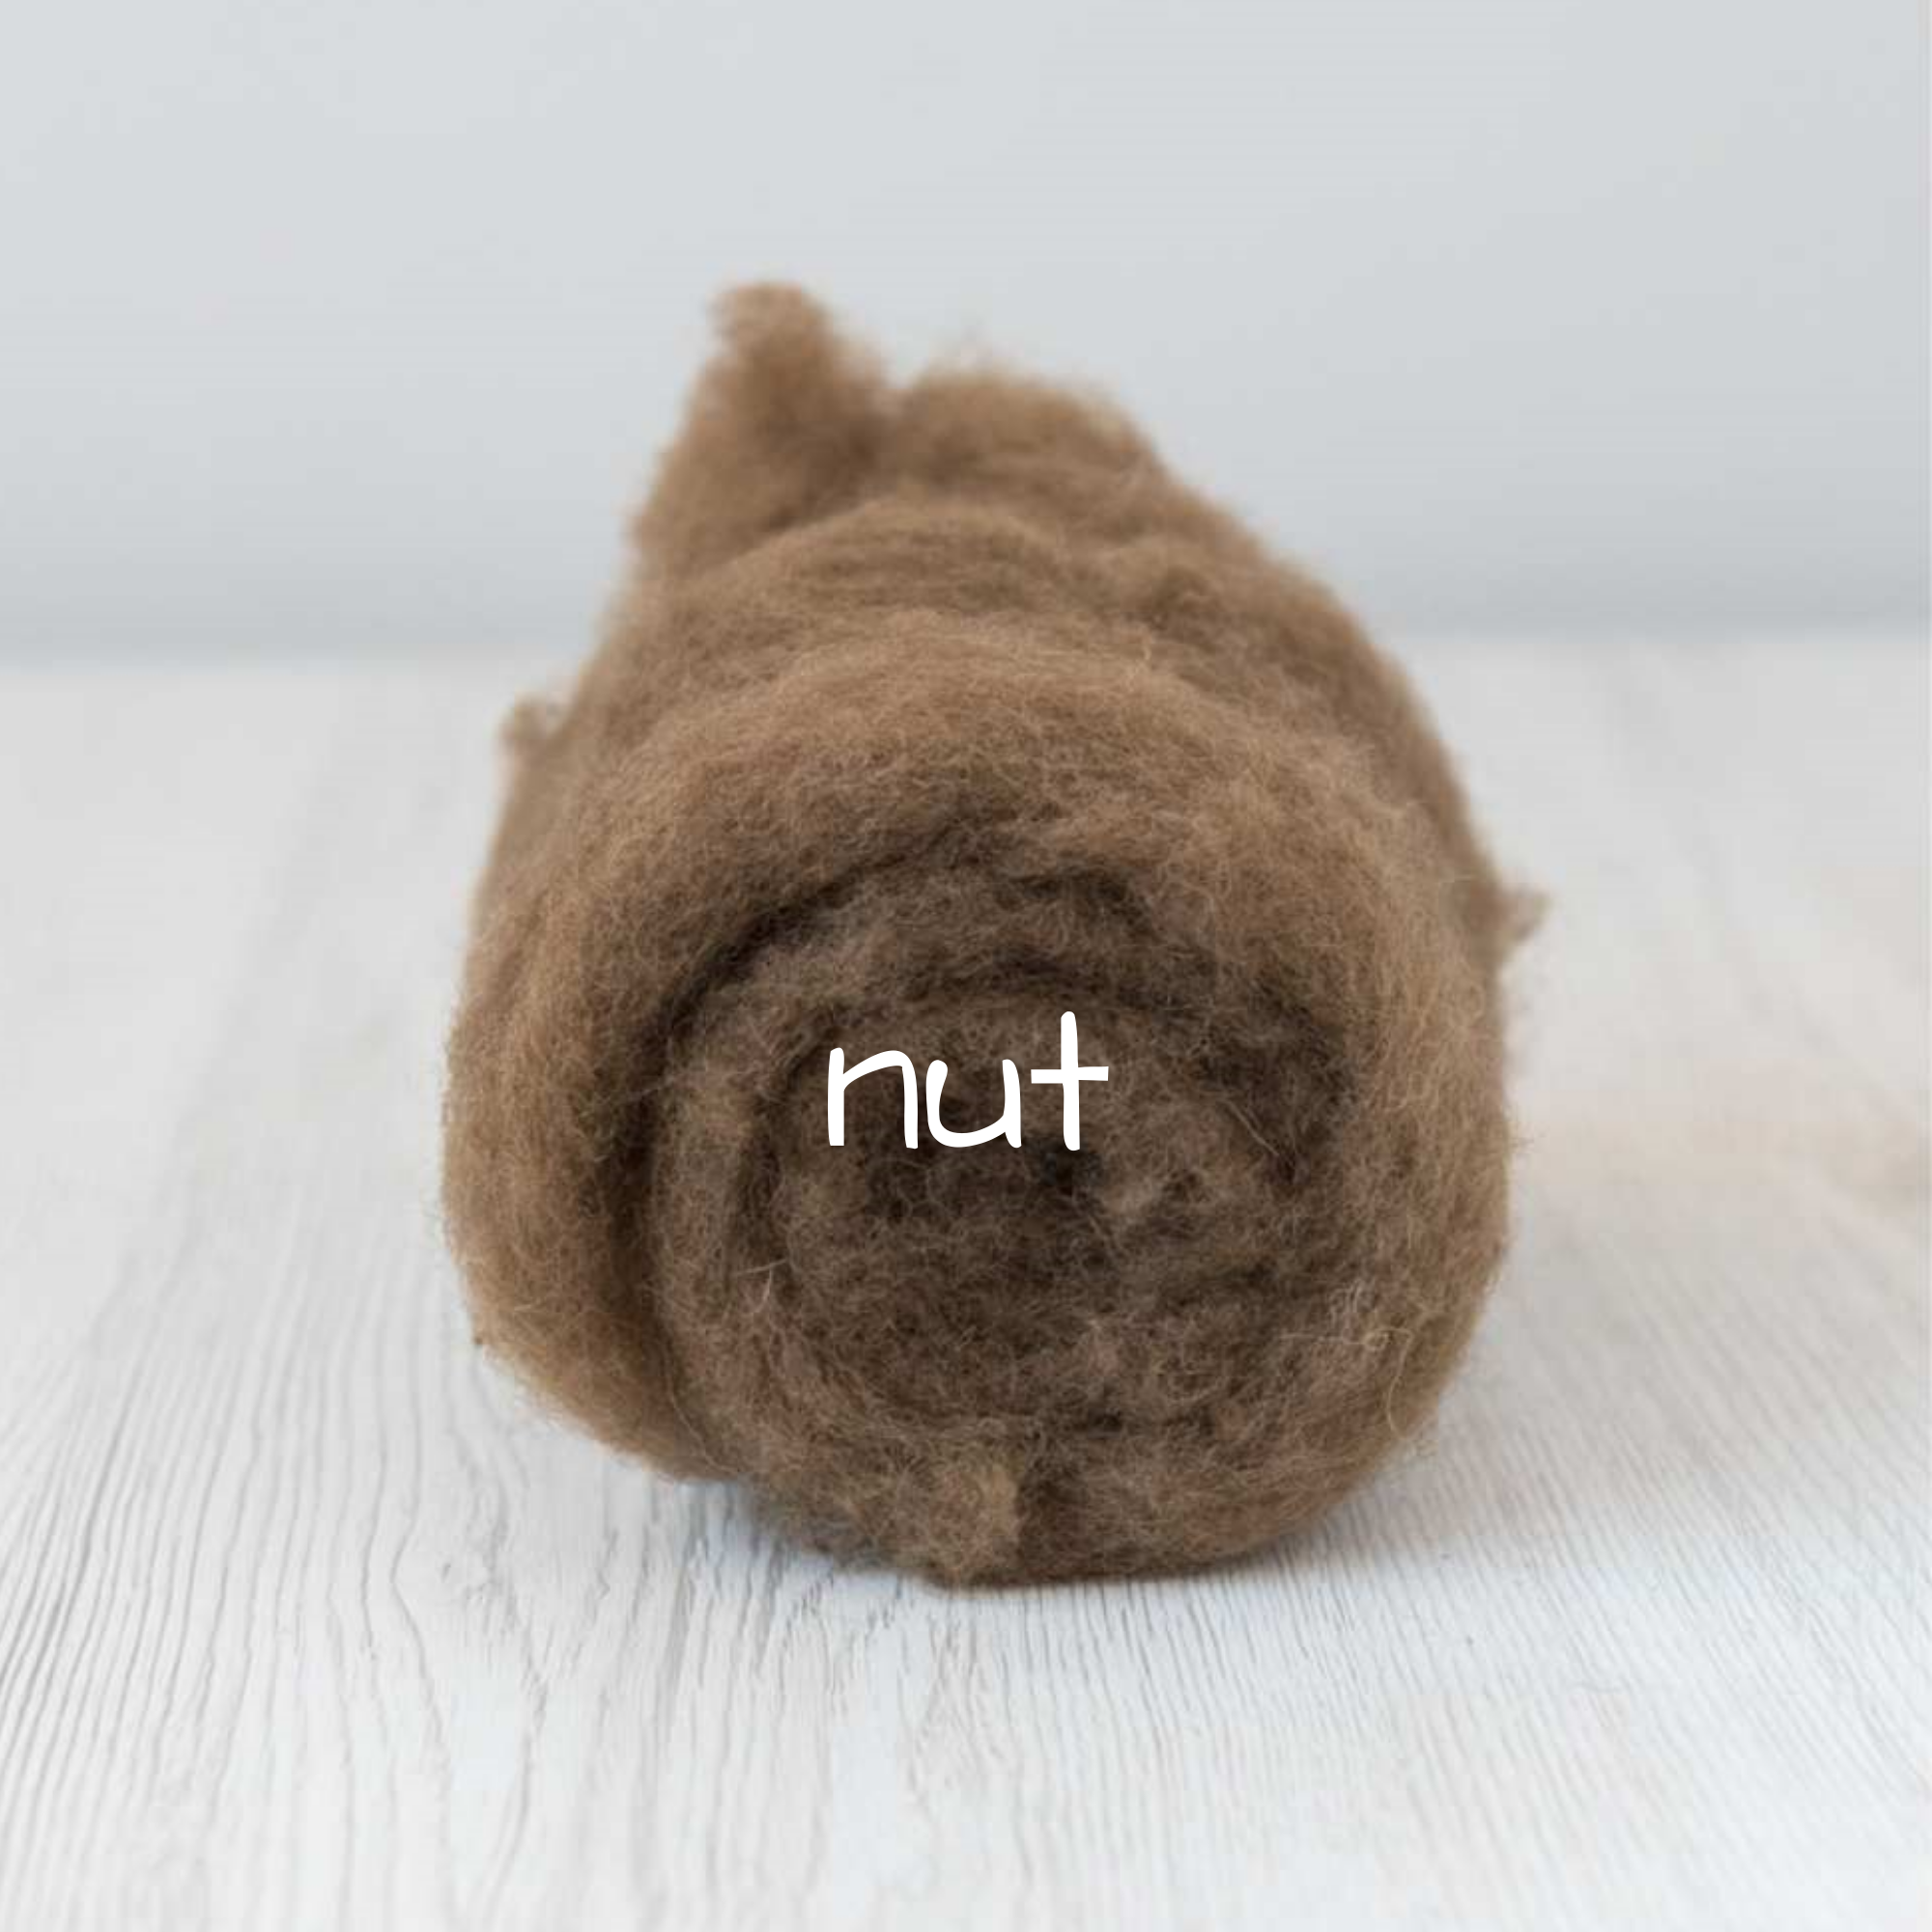 Carded New Zealand Wool DHG 'Maori' Batt - Nut